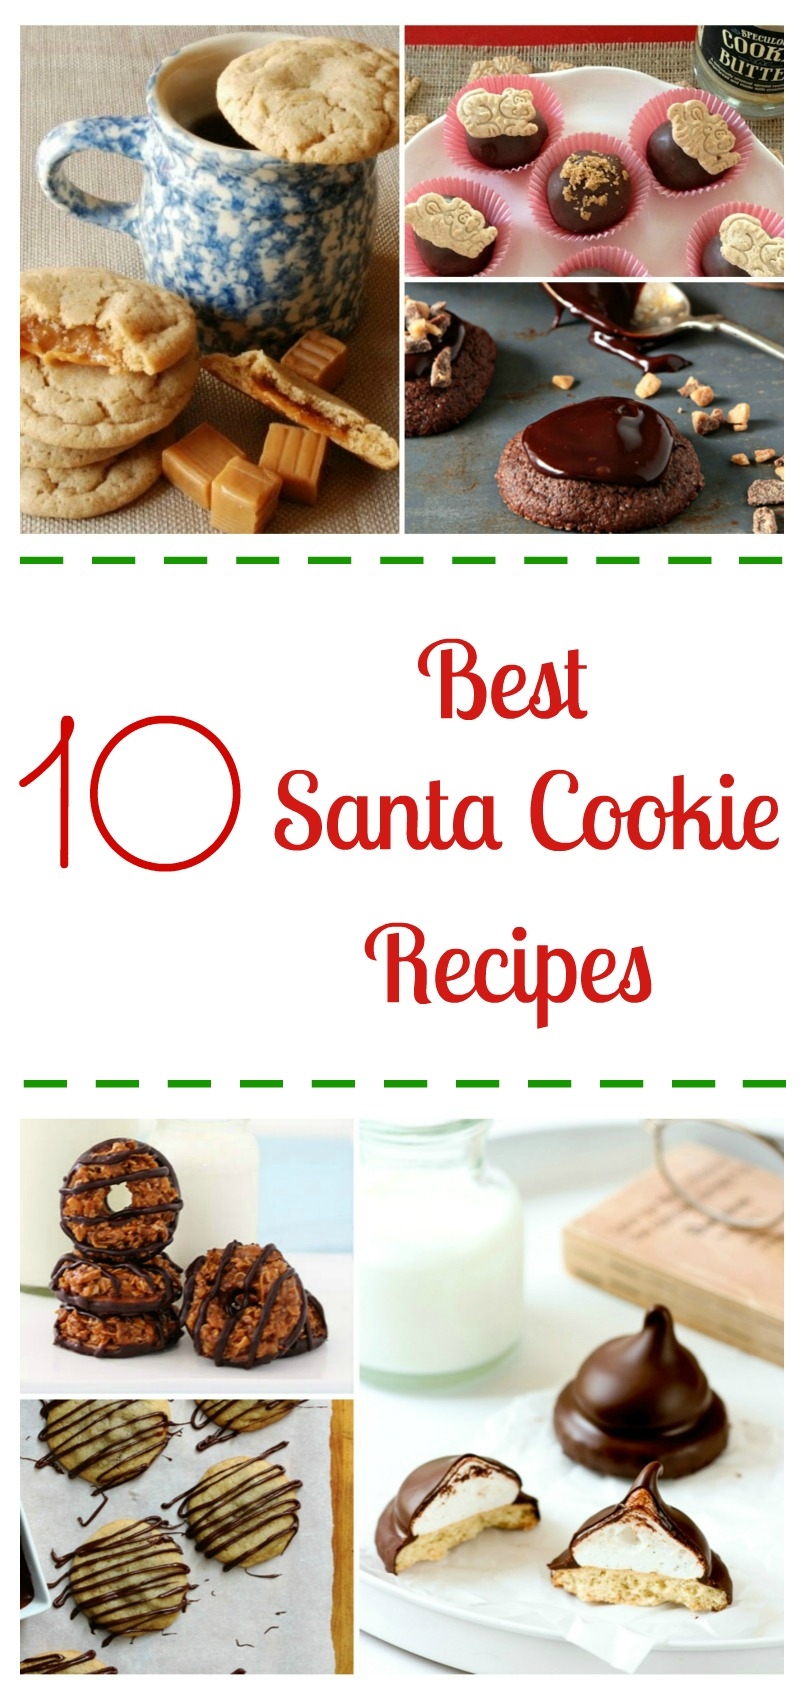 Looking for some amazing Christmas cookies? Discover what we think are the 10 Best Santa Cookie Recipes right here at Budget Earth!